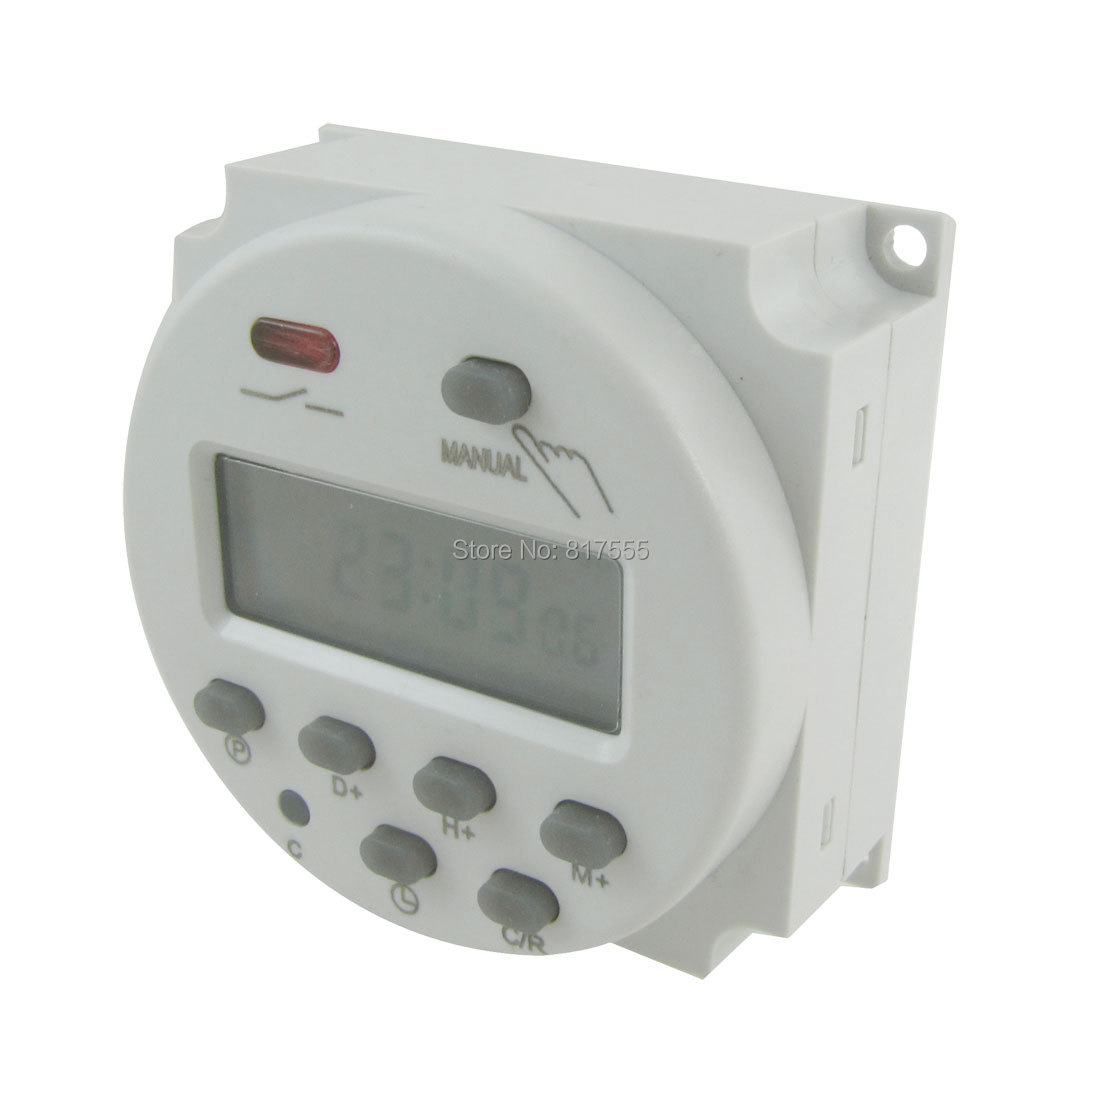 DC 12V Digital LCD Power Programmable Timer Time Switch Relay 10A Amps hhs6a correct time countdown intelligence number show time relay bring power failure memory ac220v